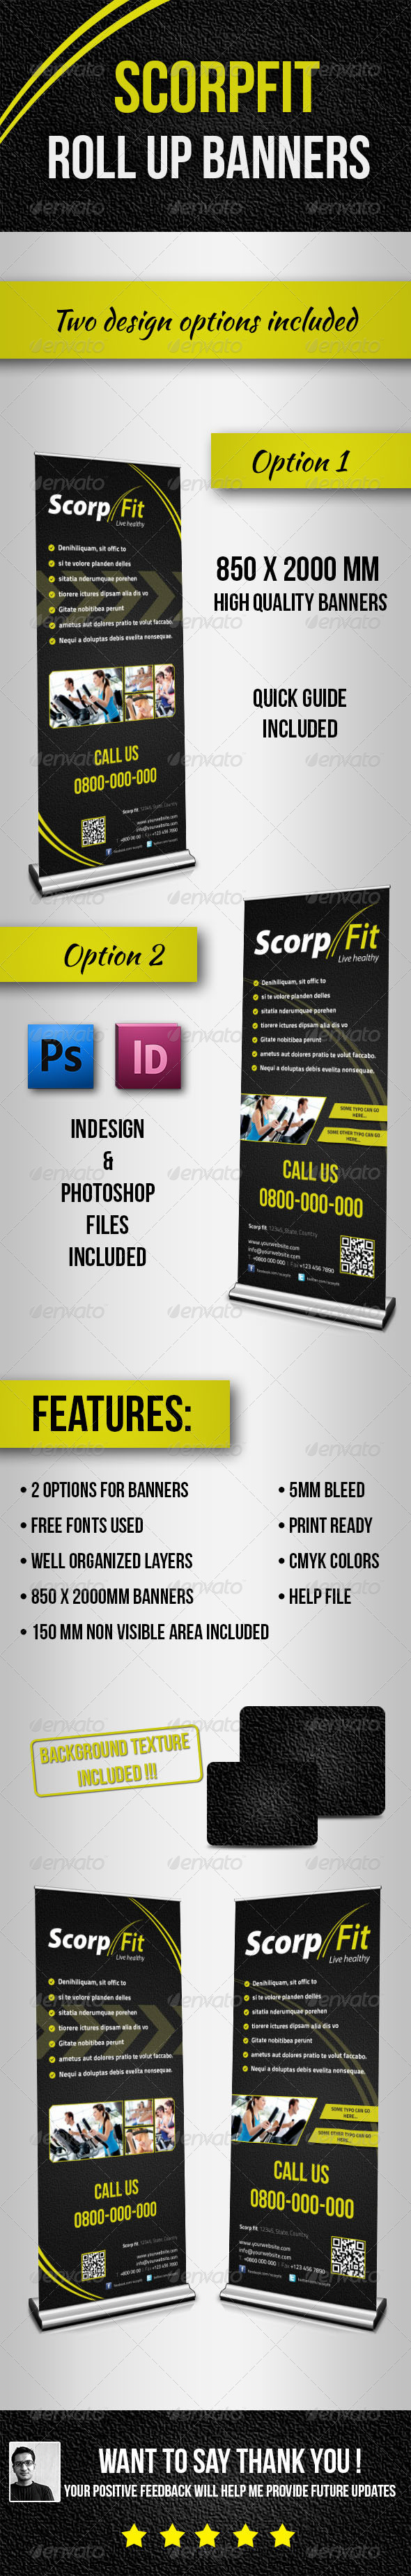 Scorpfit Rollup Banners - Signage Print Templates